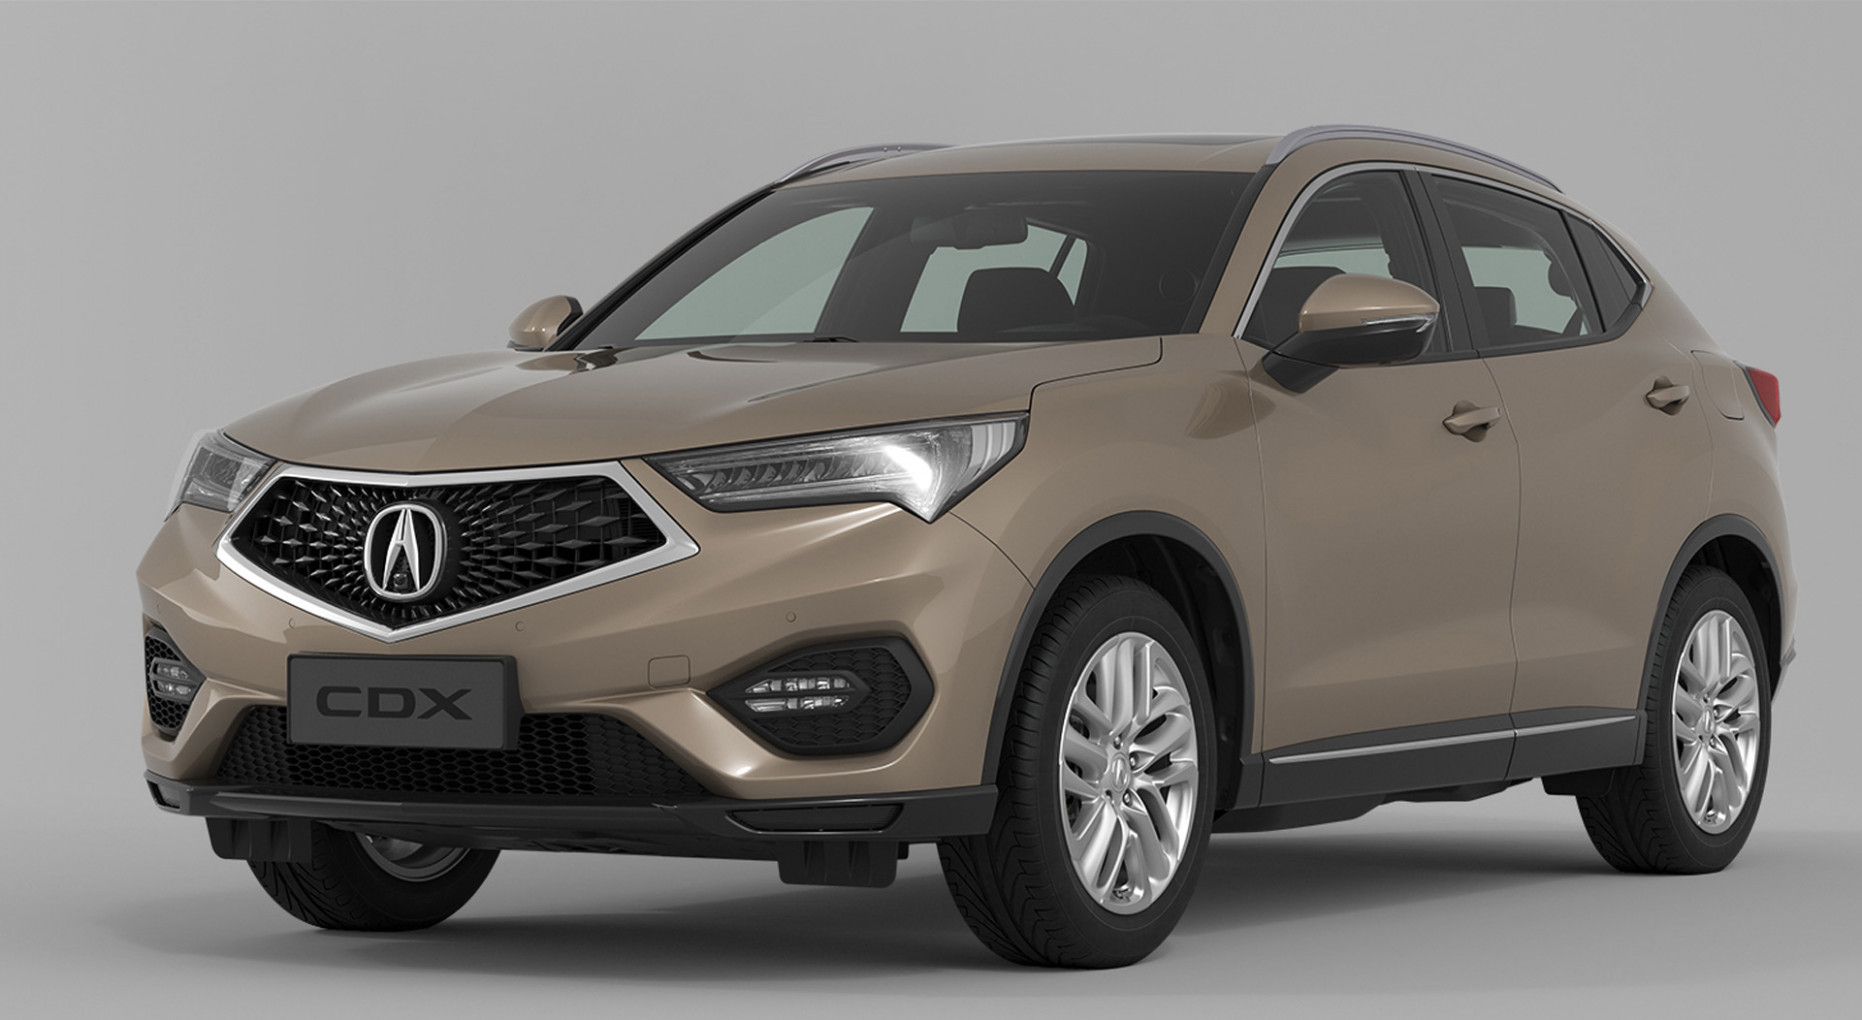 Acura CDX compact crossover debuts at 8 Beijing auto show